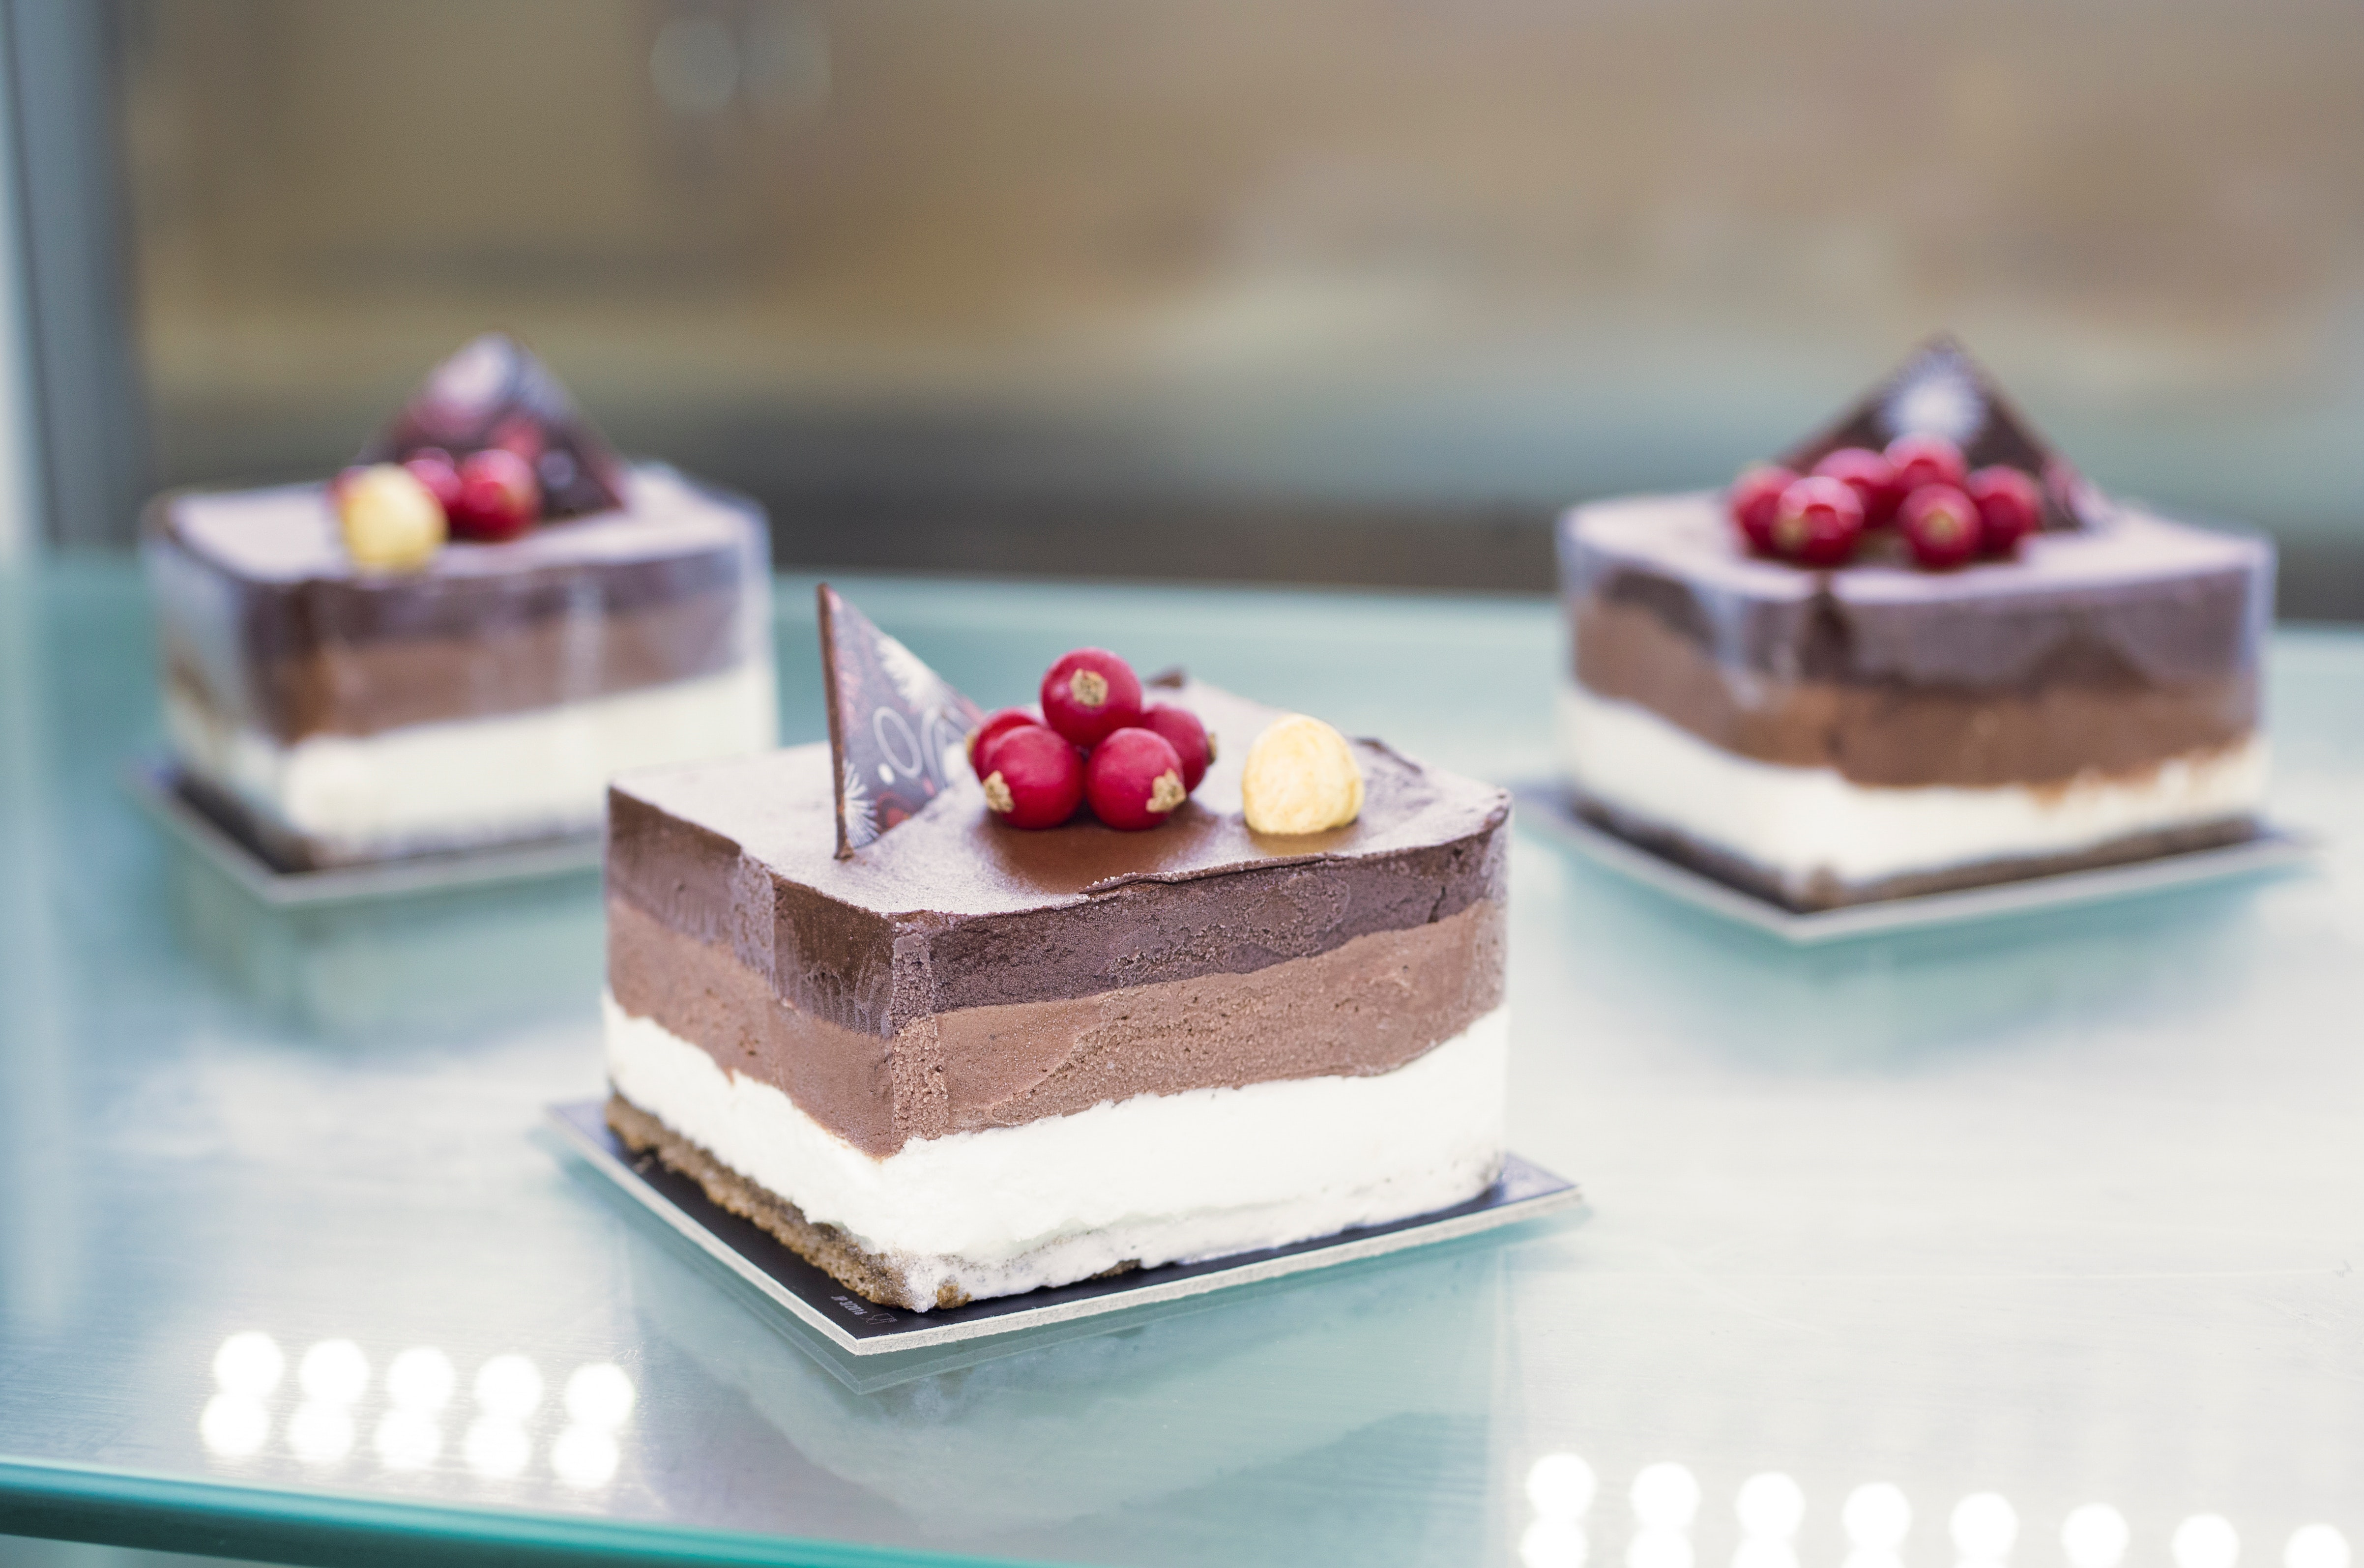 tatte bakery - mousse cakes